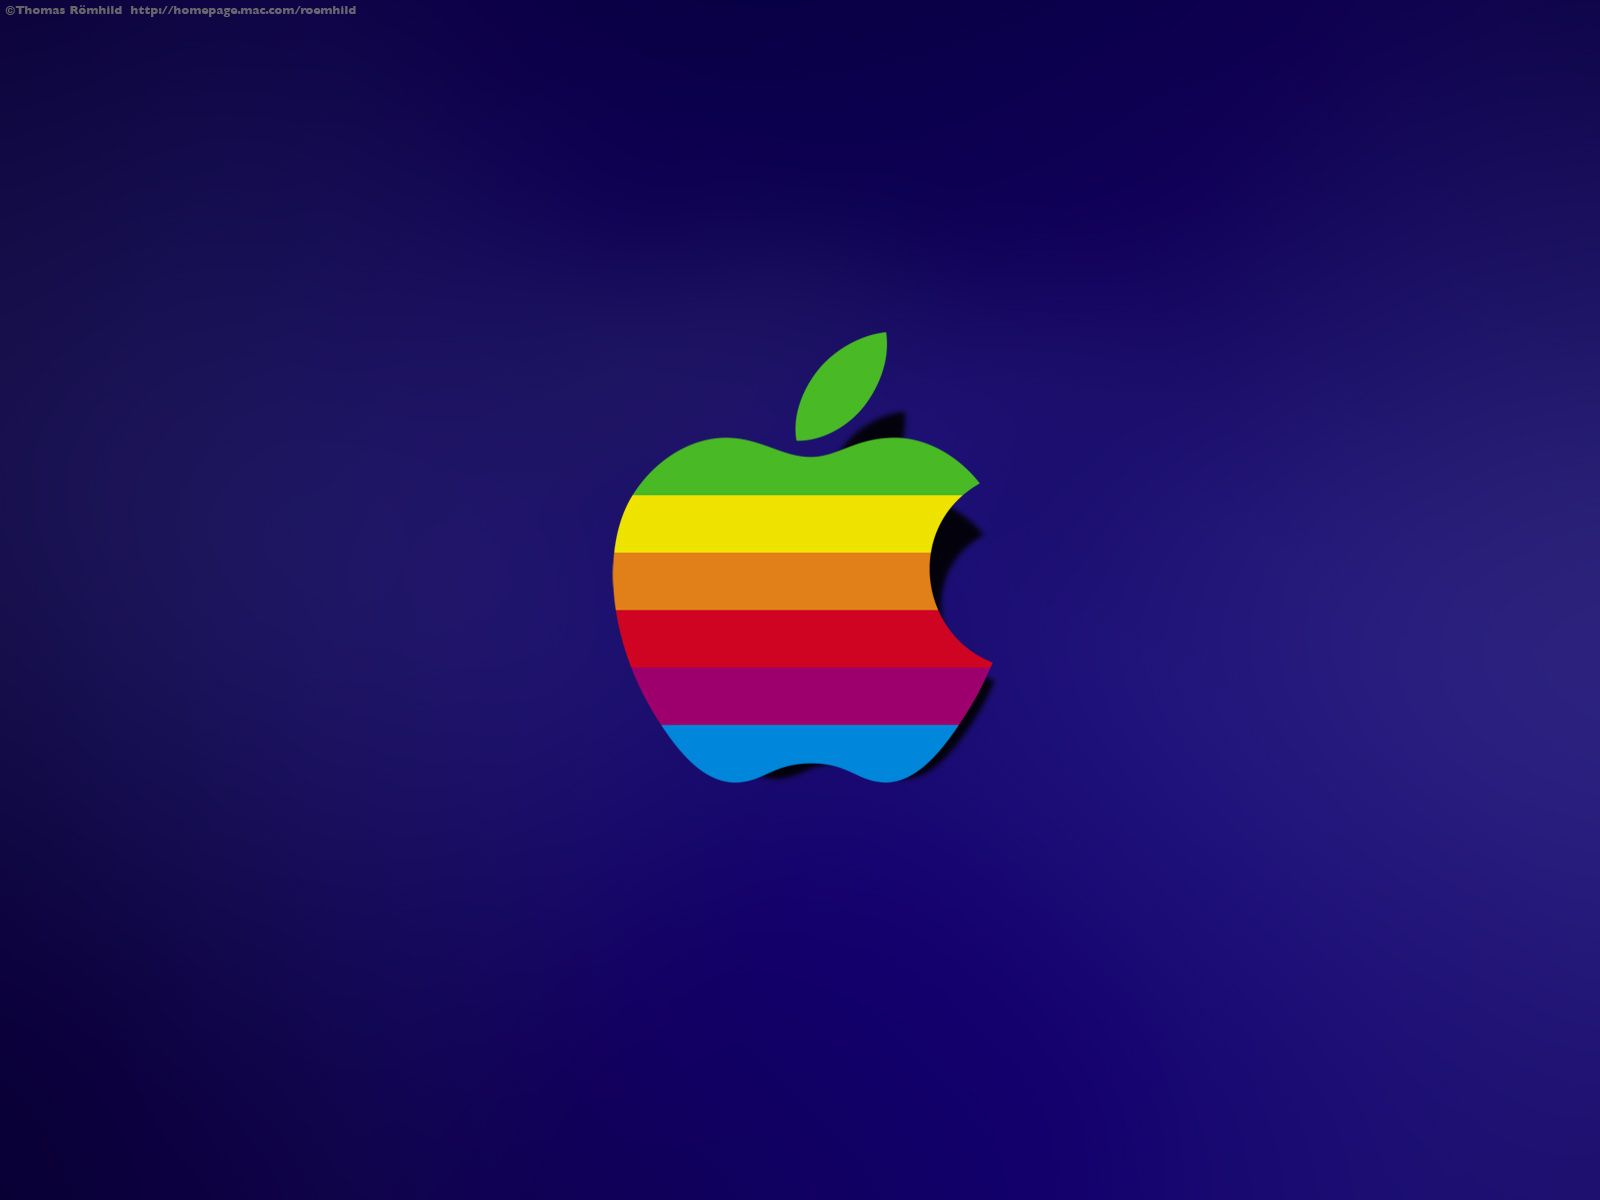 colourful apple logo | apple | pinterest | logos, wallpapers and